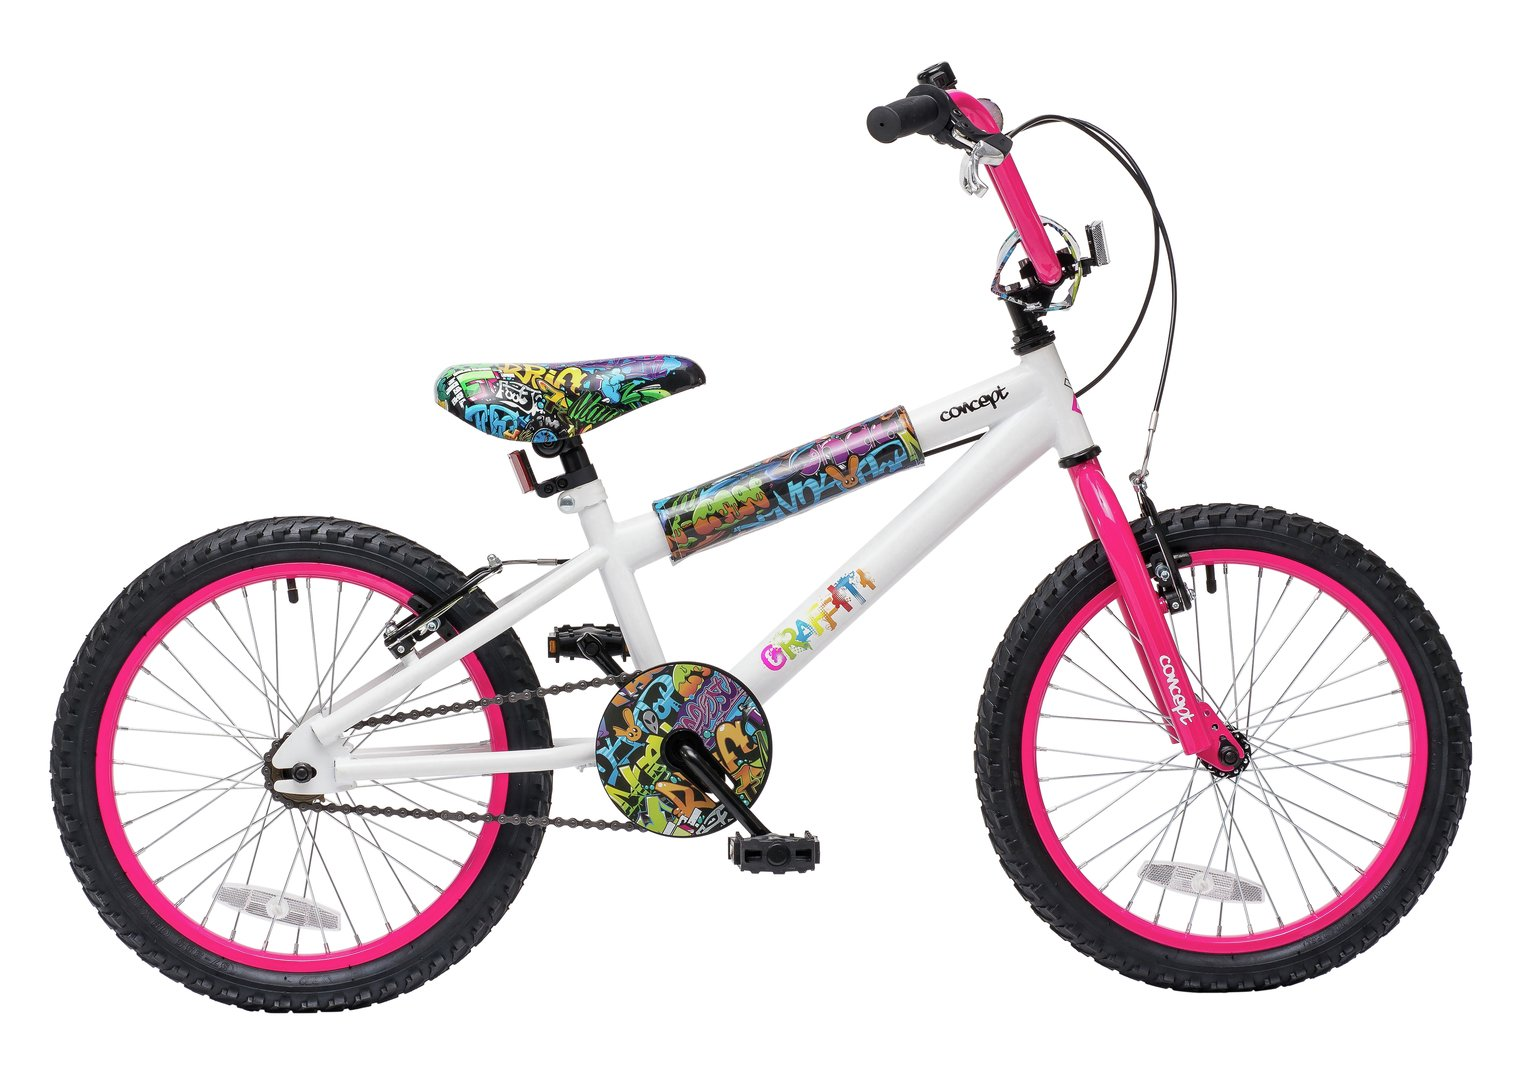 Image of Concept 9.5 Inch Kids BMX Bike - Graffiti